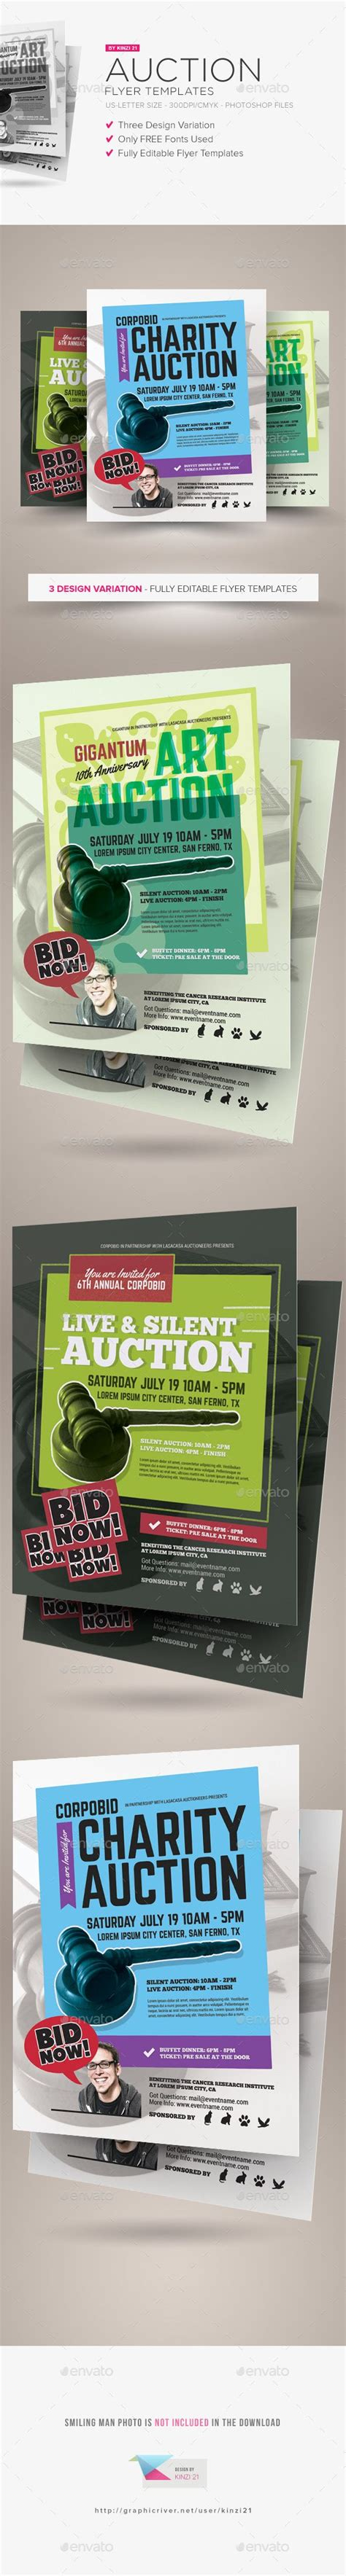 Auction Flyer Templates Flyer Template Template And Event Flyers Auction Flyer Template